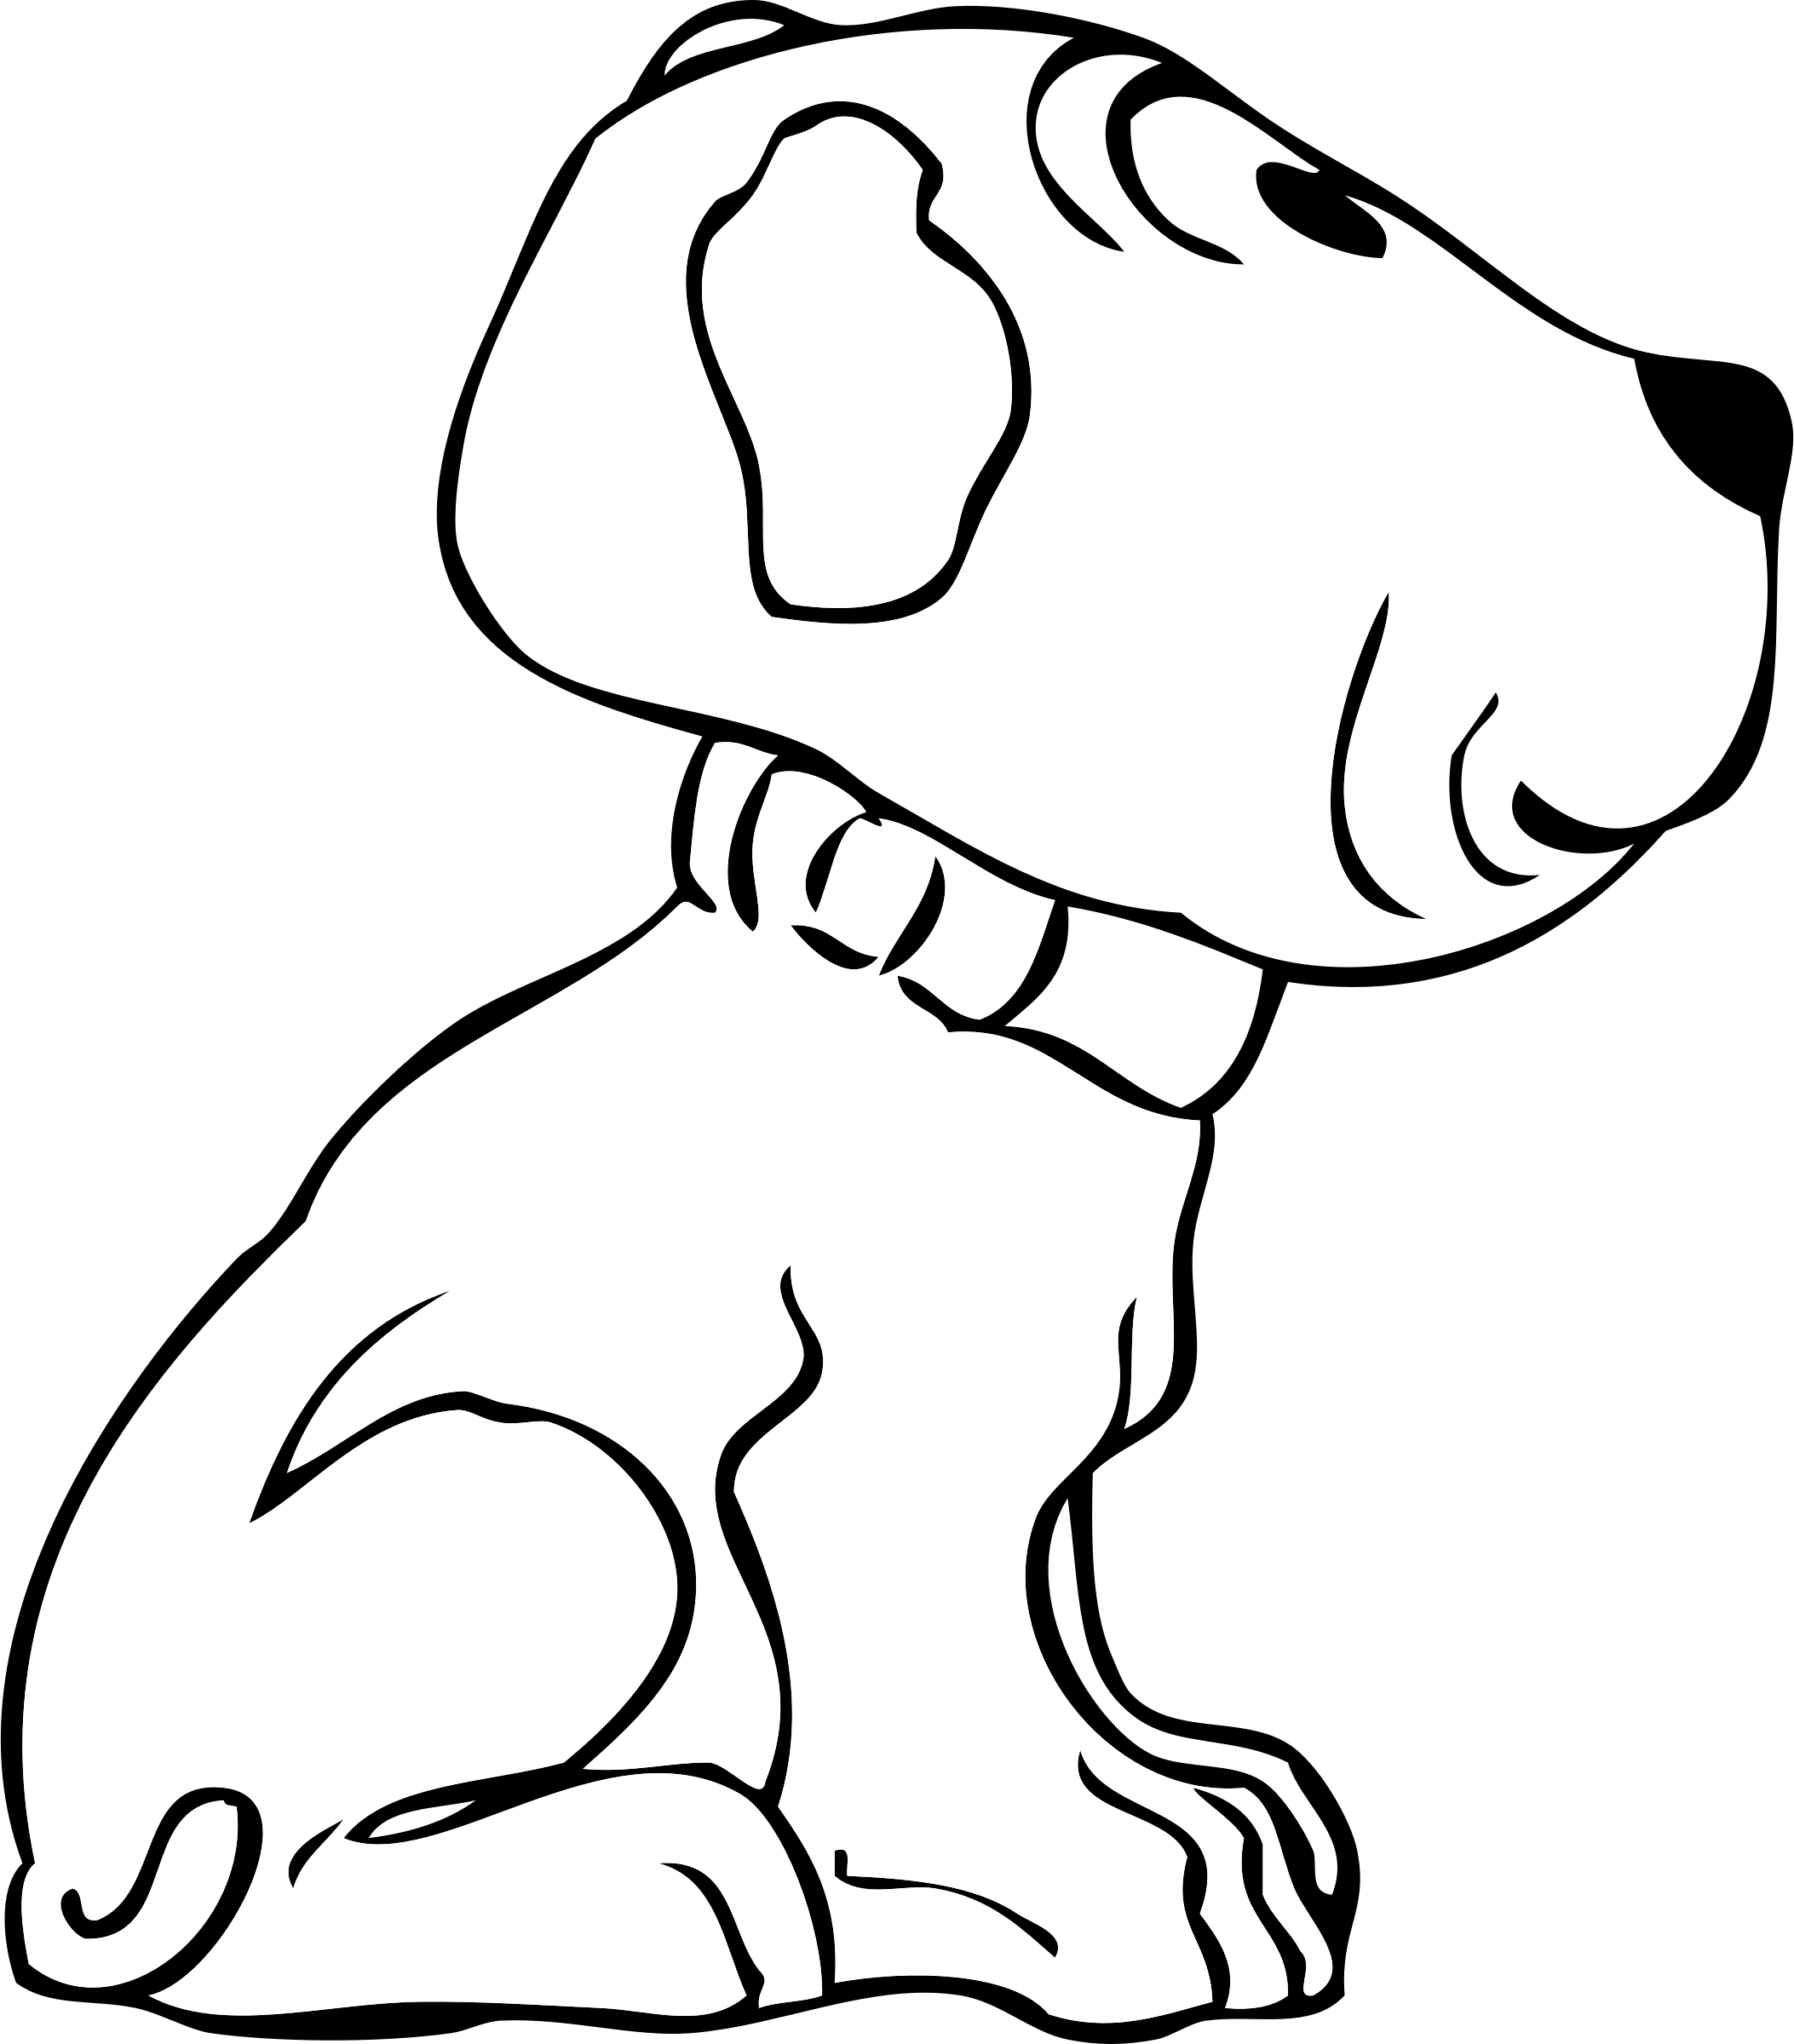 R34 drawing side view. Clipart puppy big image